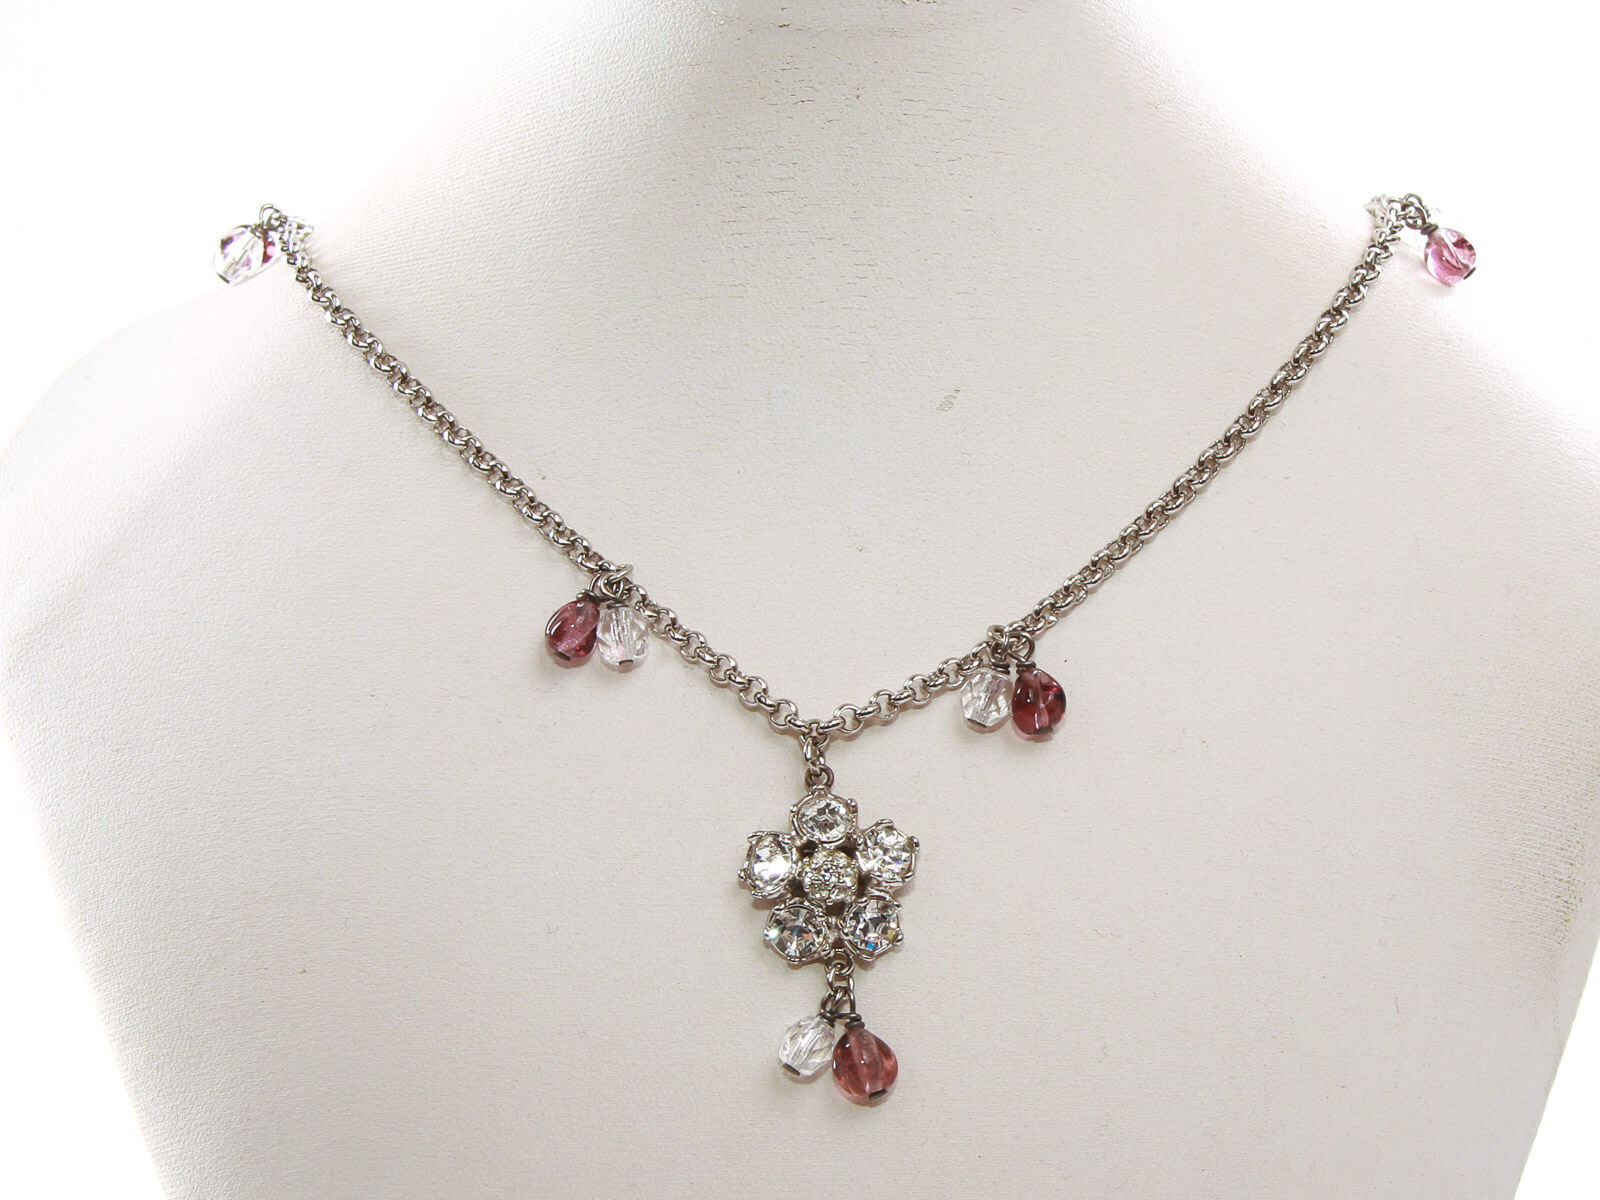 Authentic Salvatore Ferragamo silver chain crystal flower pendant necklace